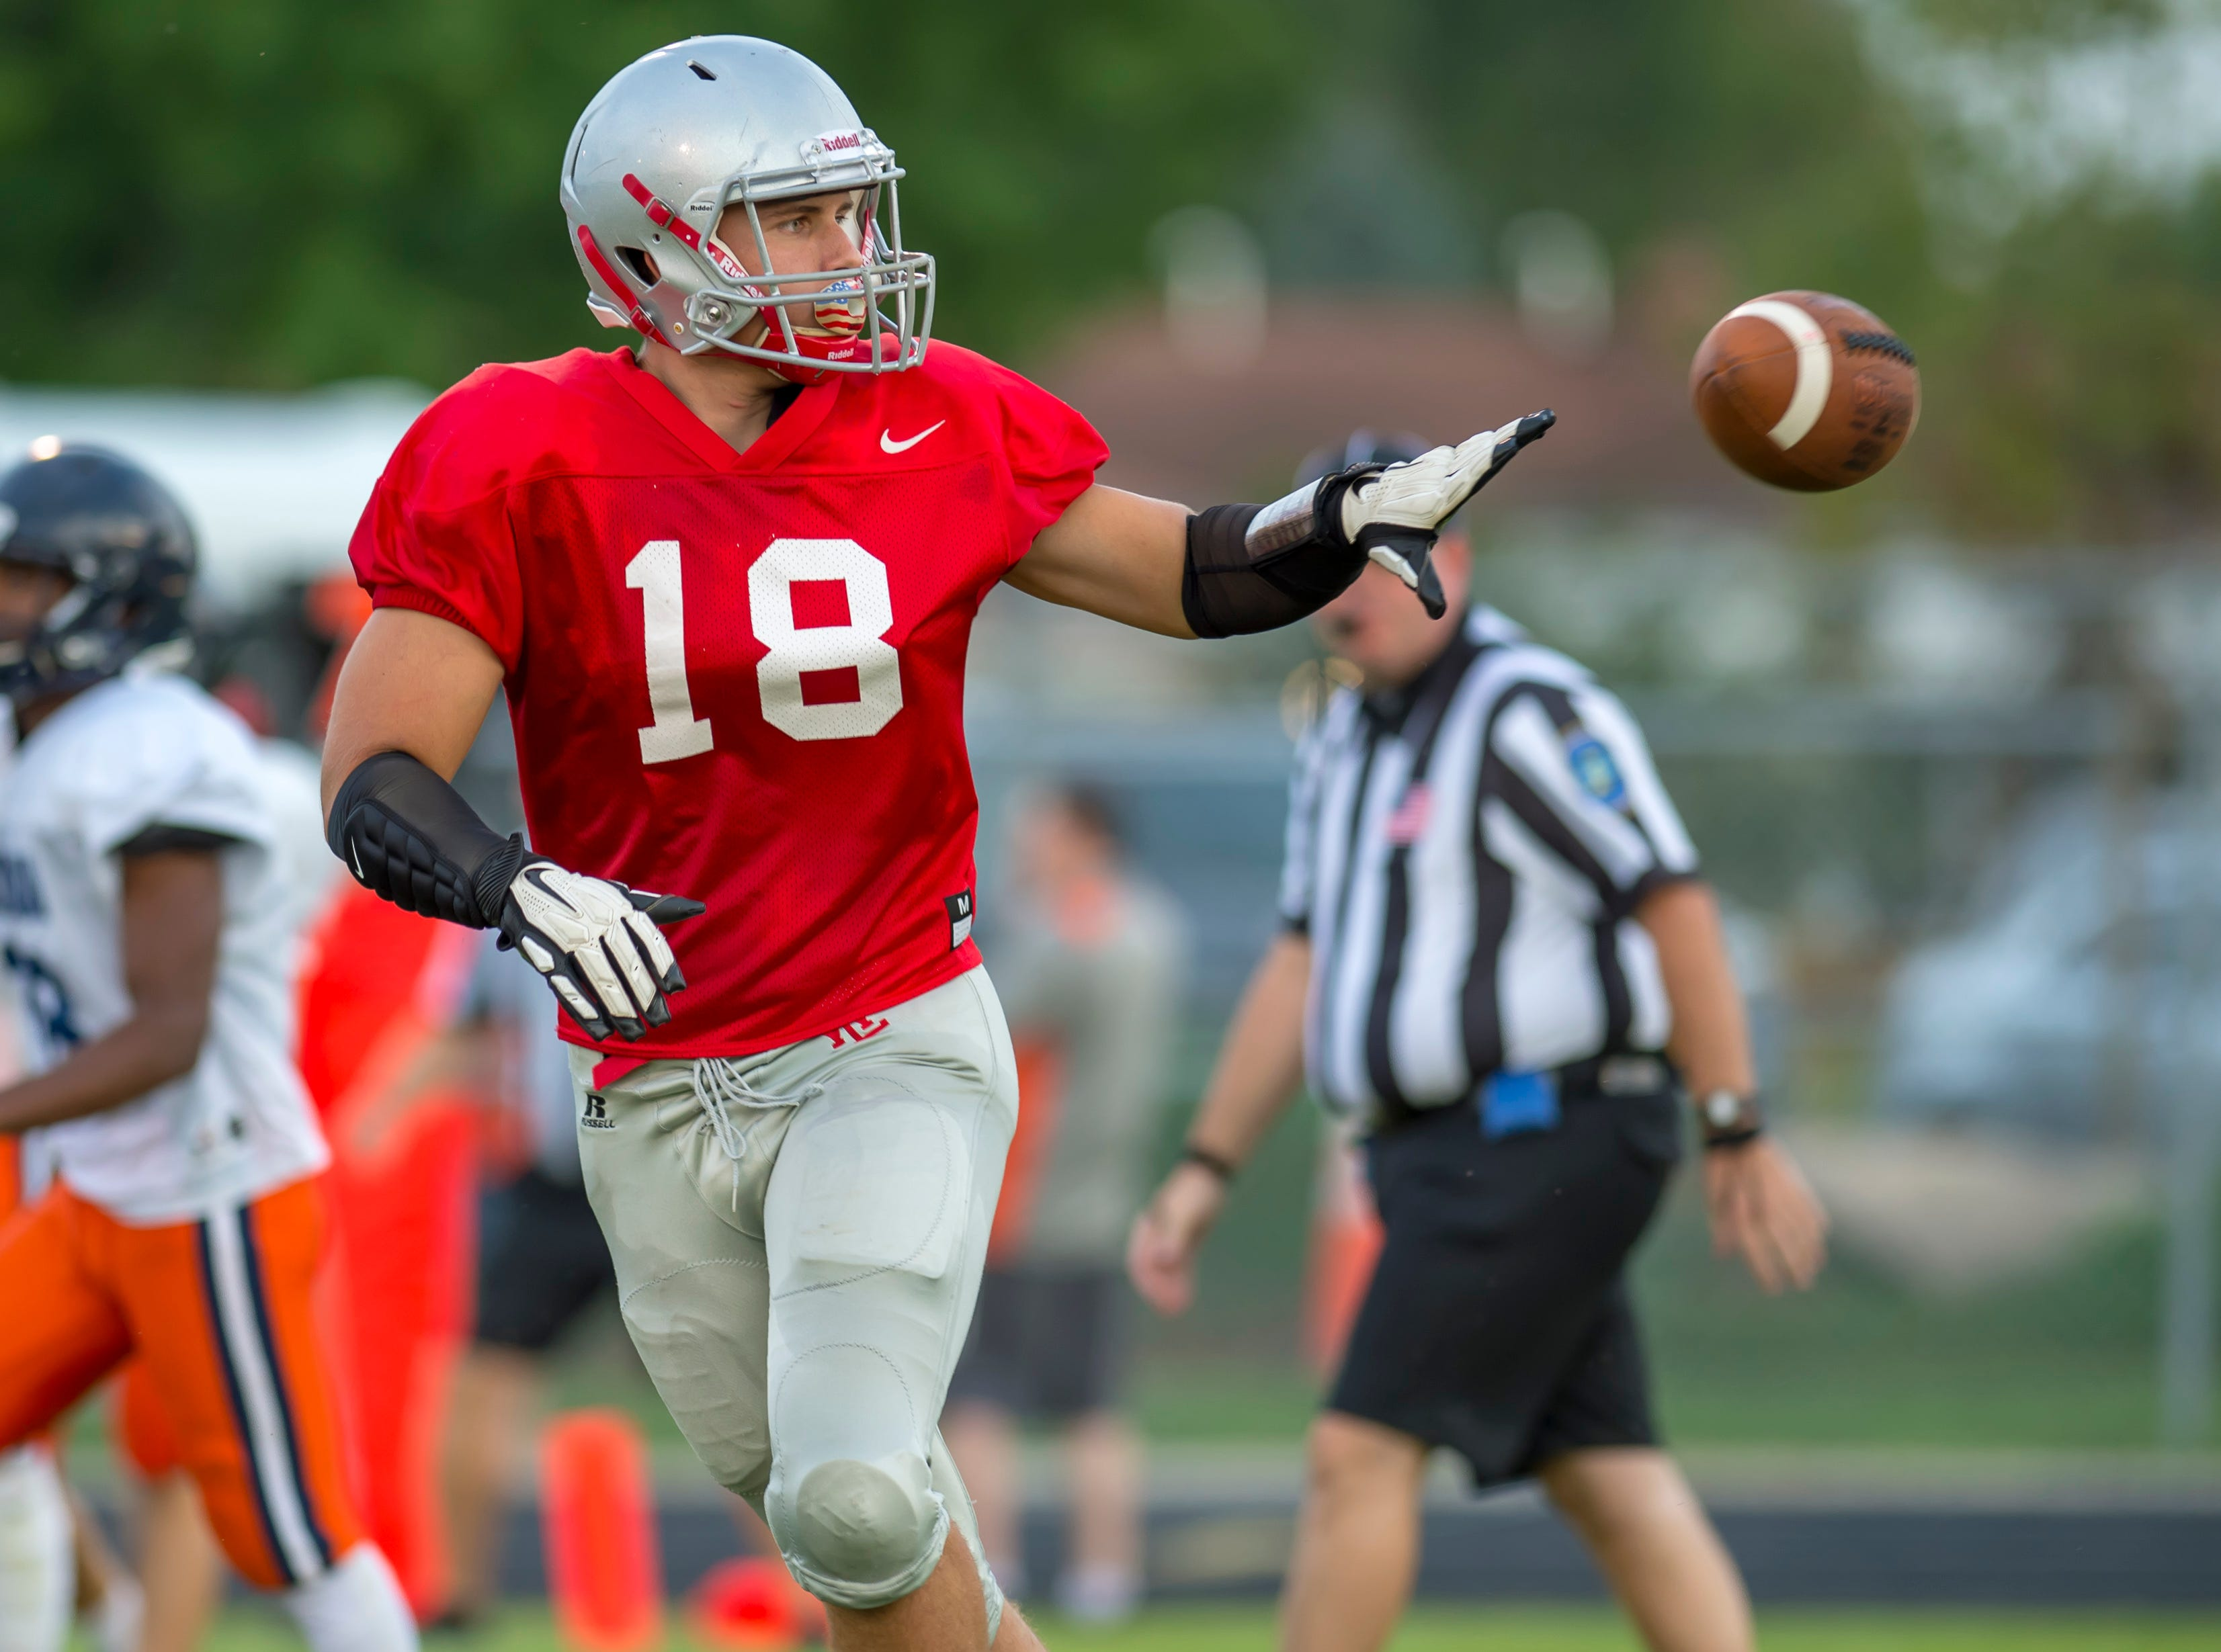 Sage Hood flips the ball to the referee after a West Side score in the football scrimmage between the Harrison Raiders and the West Lafayette Red Devils from Gordon Straley Field